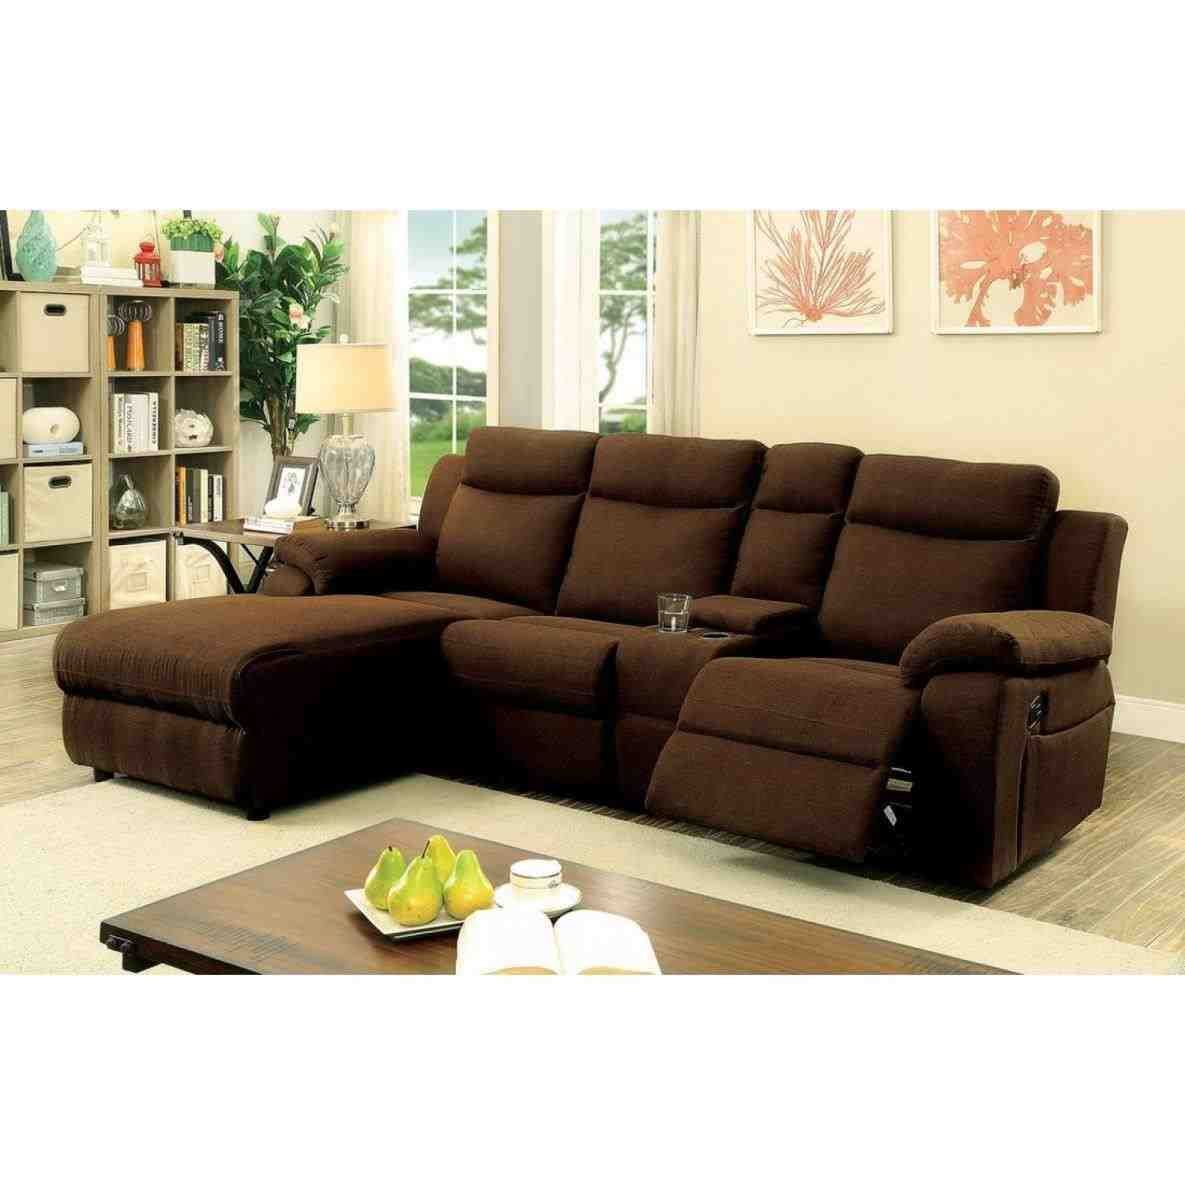 10 Living Room Upcycling Furniture Ideas Sectional Sofa With